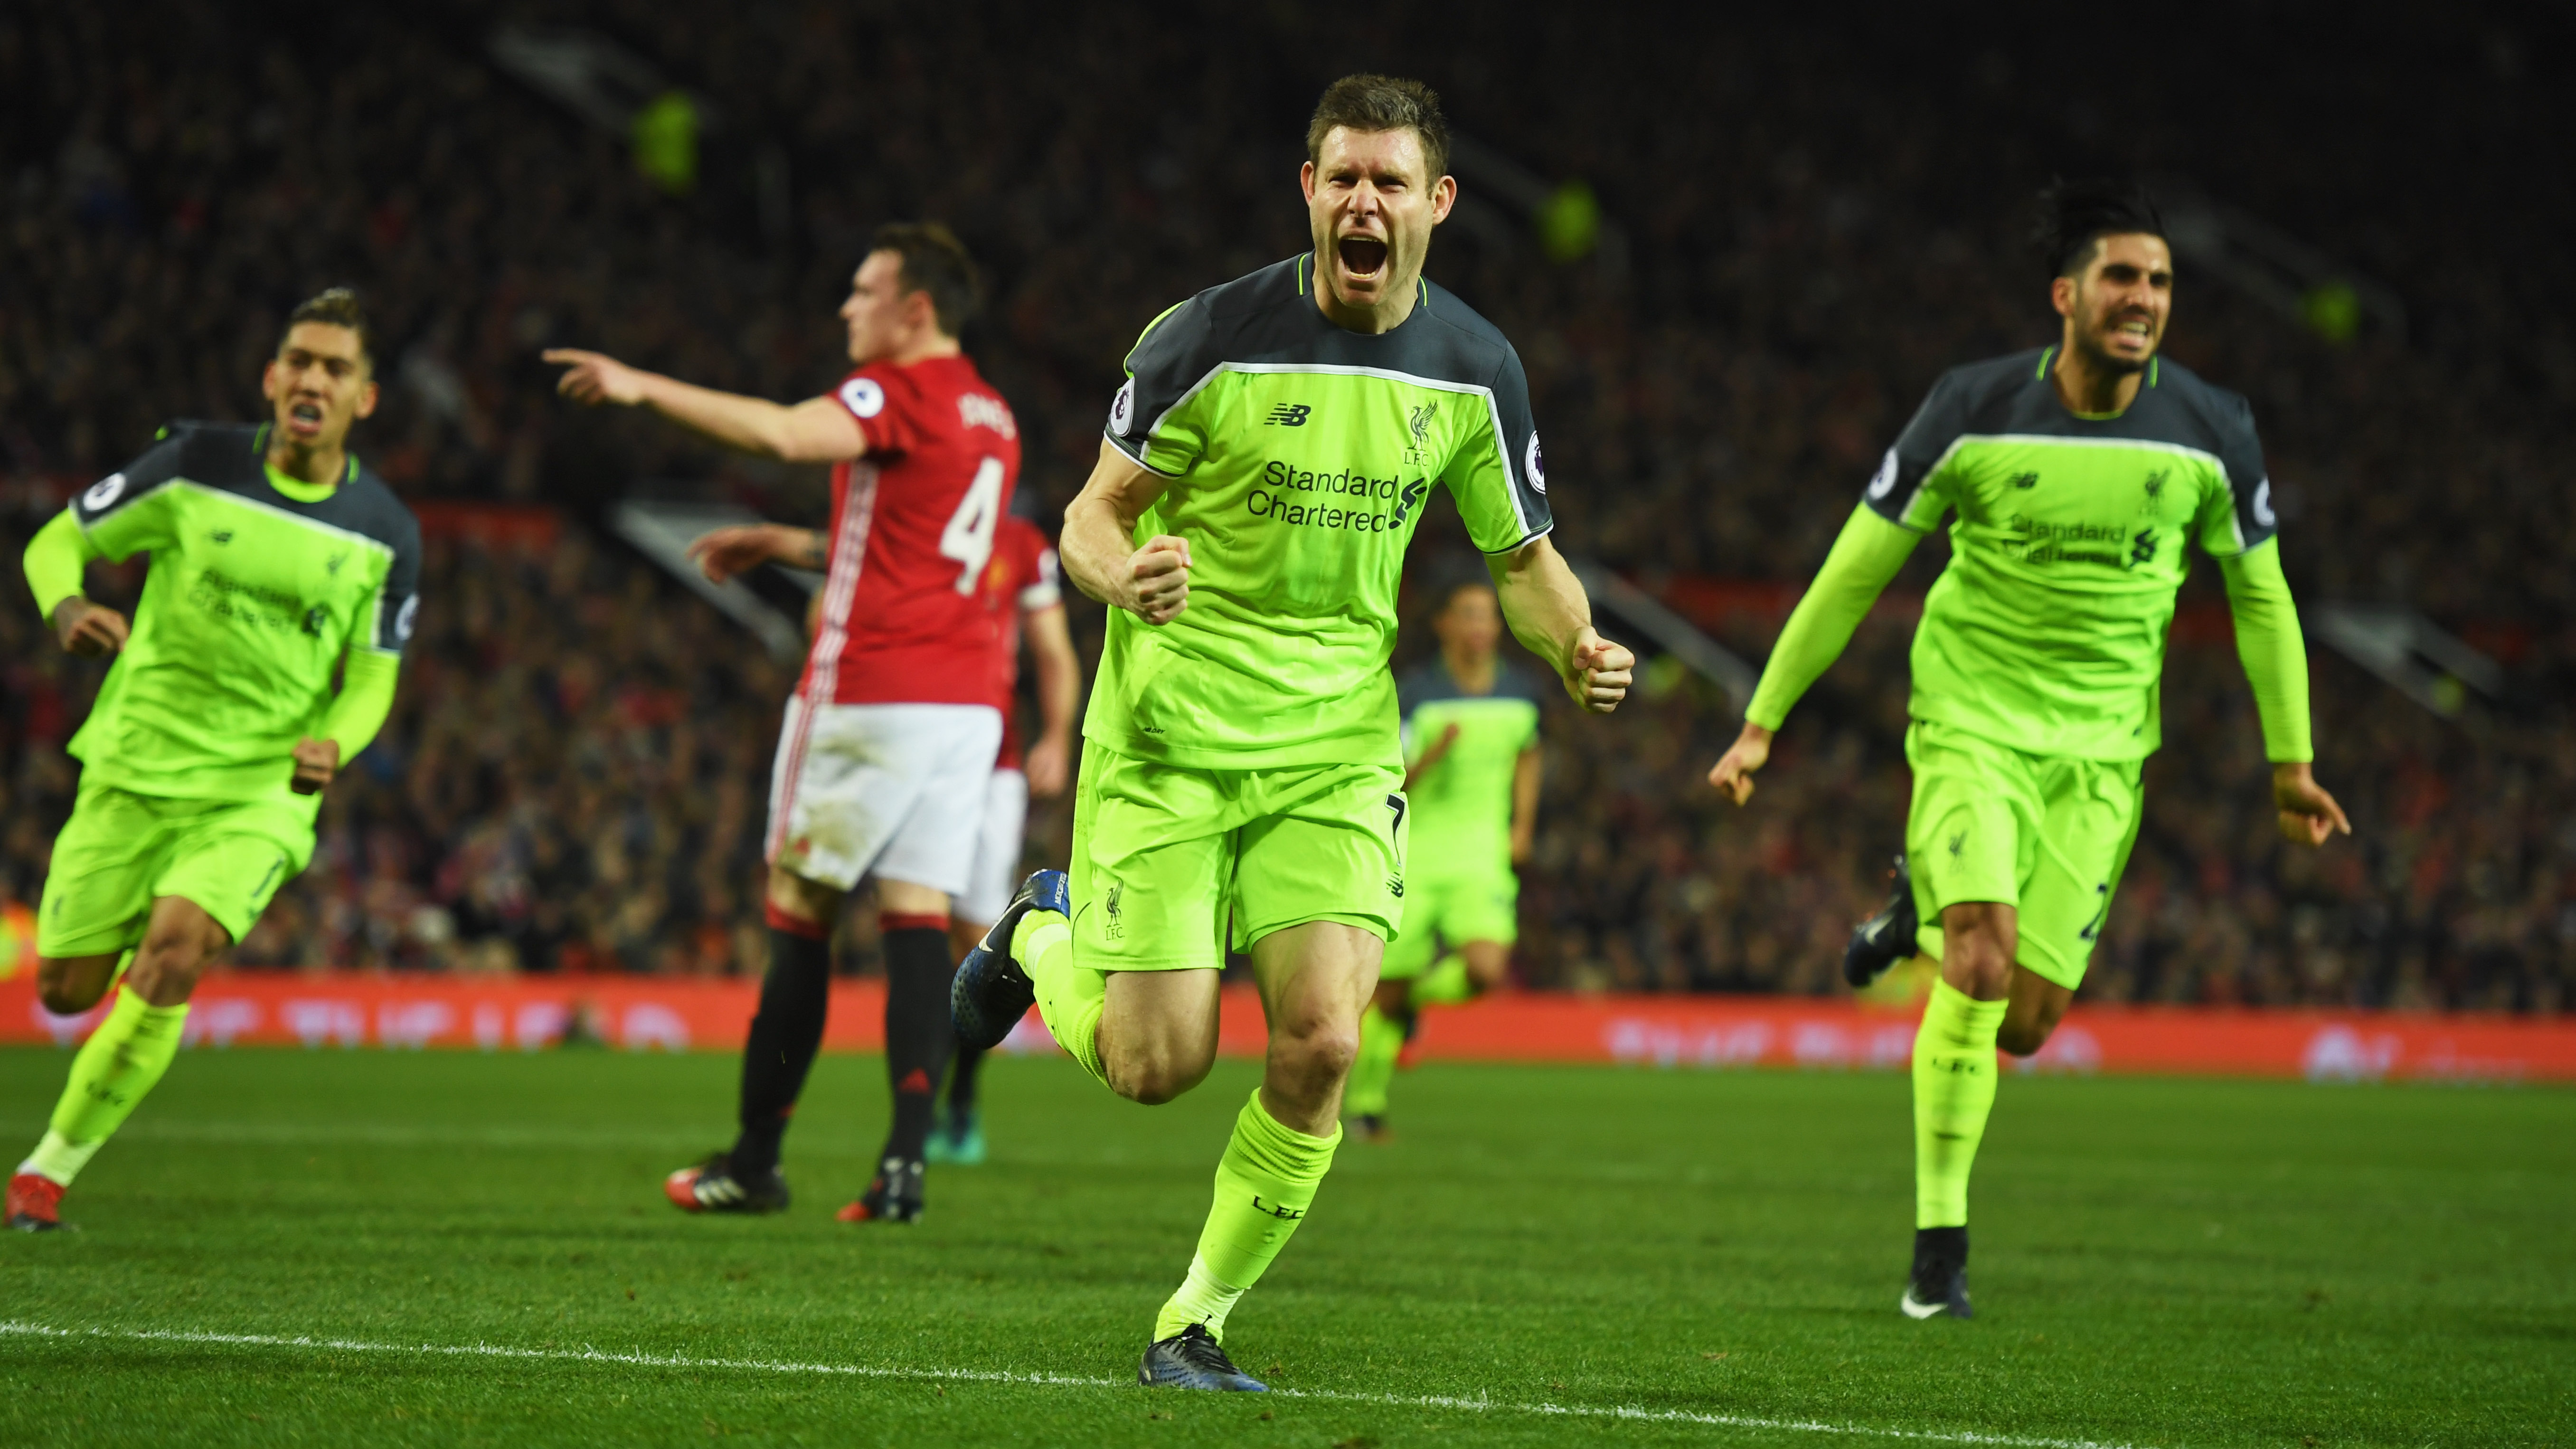 MANCHESTER, ENGLAND - JANUARY 15:  James Milner of Liverpool (C) celebrates as he scores their first goal from a penalty during the Premier League match between Manchester United and Liverpool at Old Trafford on January 15, 2017 in Manchester, England.  (Photo by Mike Hewitt/Getty Images)